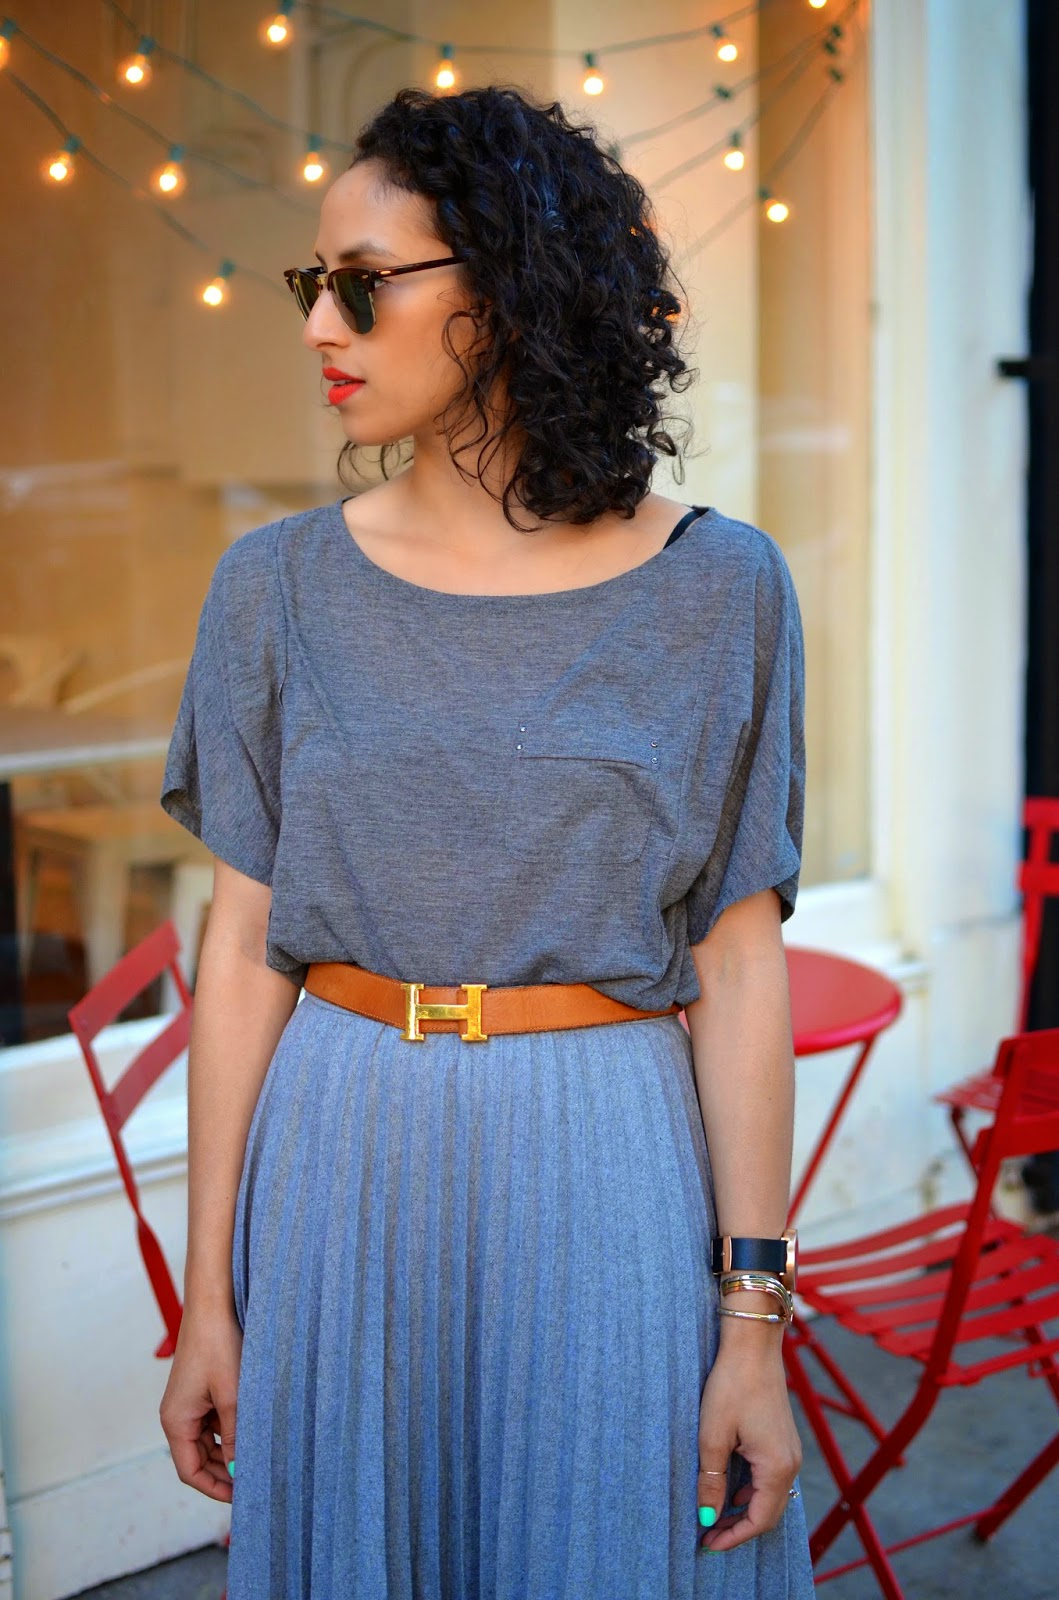 short curly hair, spring style, SF style, red lips, Ray Ban Clubmasters